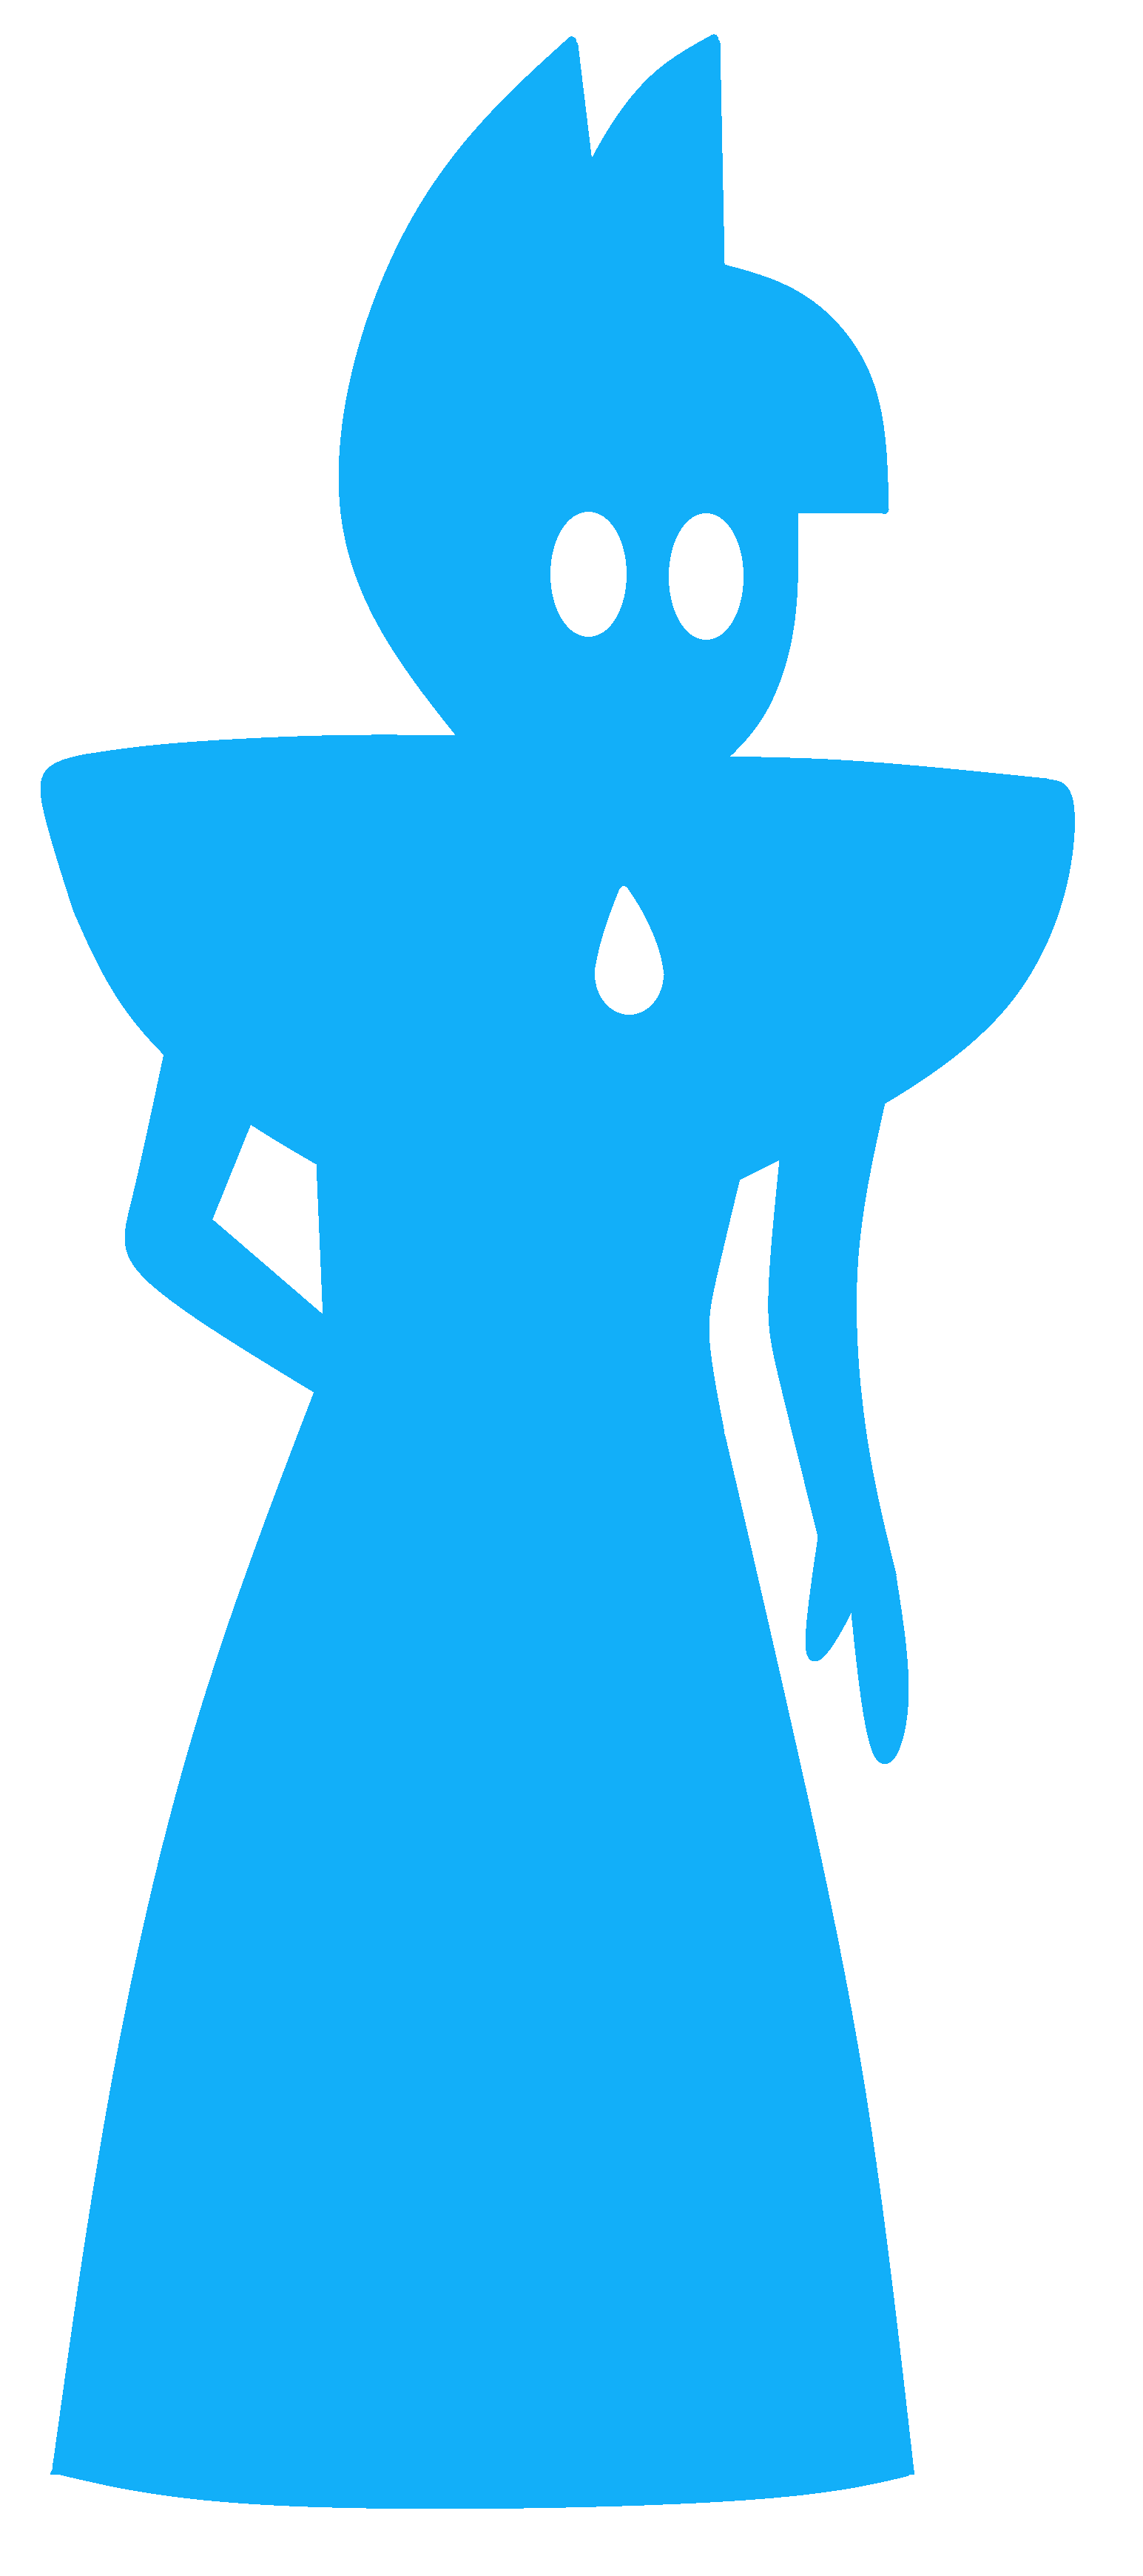 Gem clipart aqua. Image the answer unknown